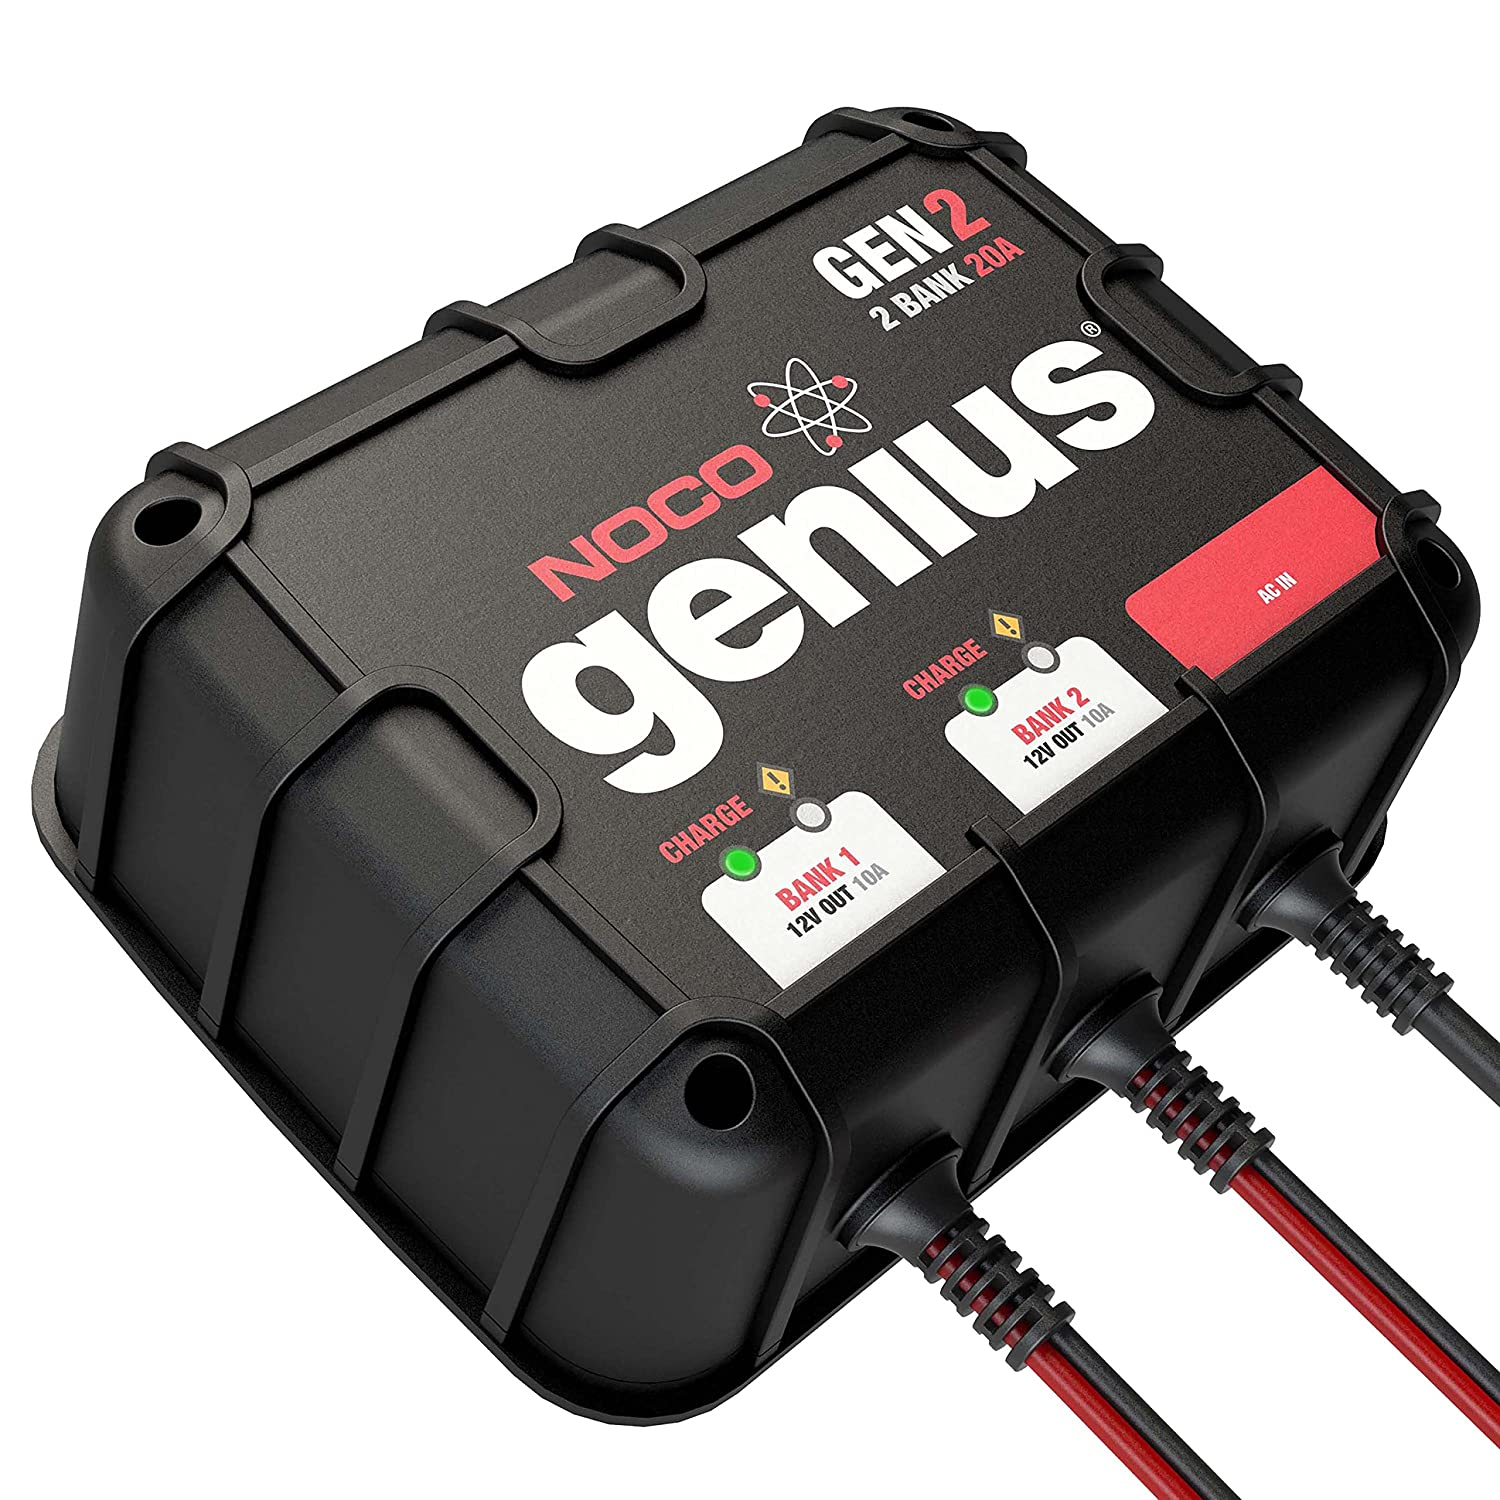 Noco Genius Gen2 20 Amp 2 Bank Waterproof Smart On Board Anti Spark Circuit Built Into The Battery Pack Charger Automotive